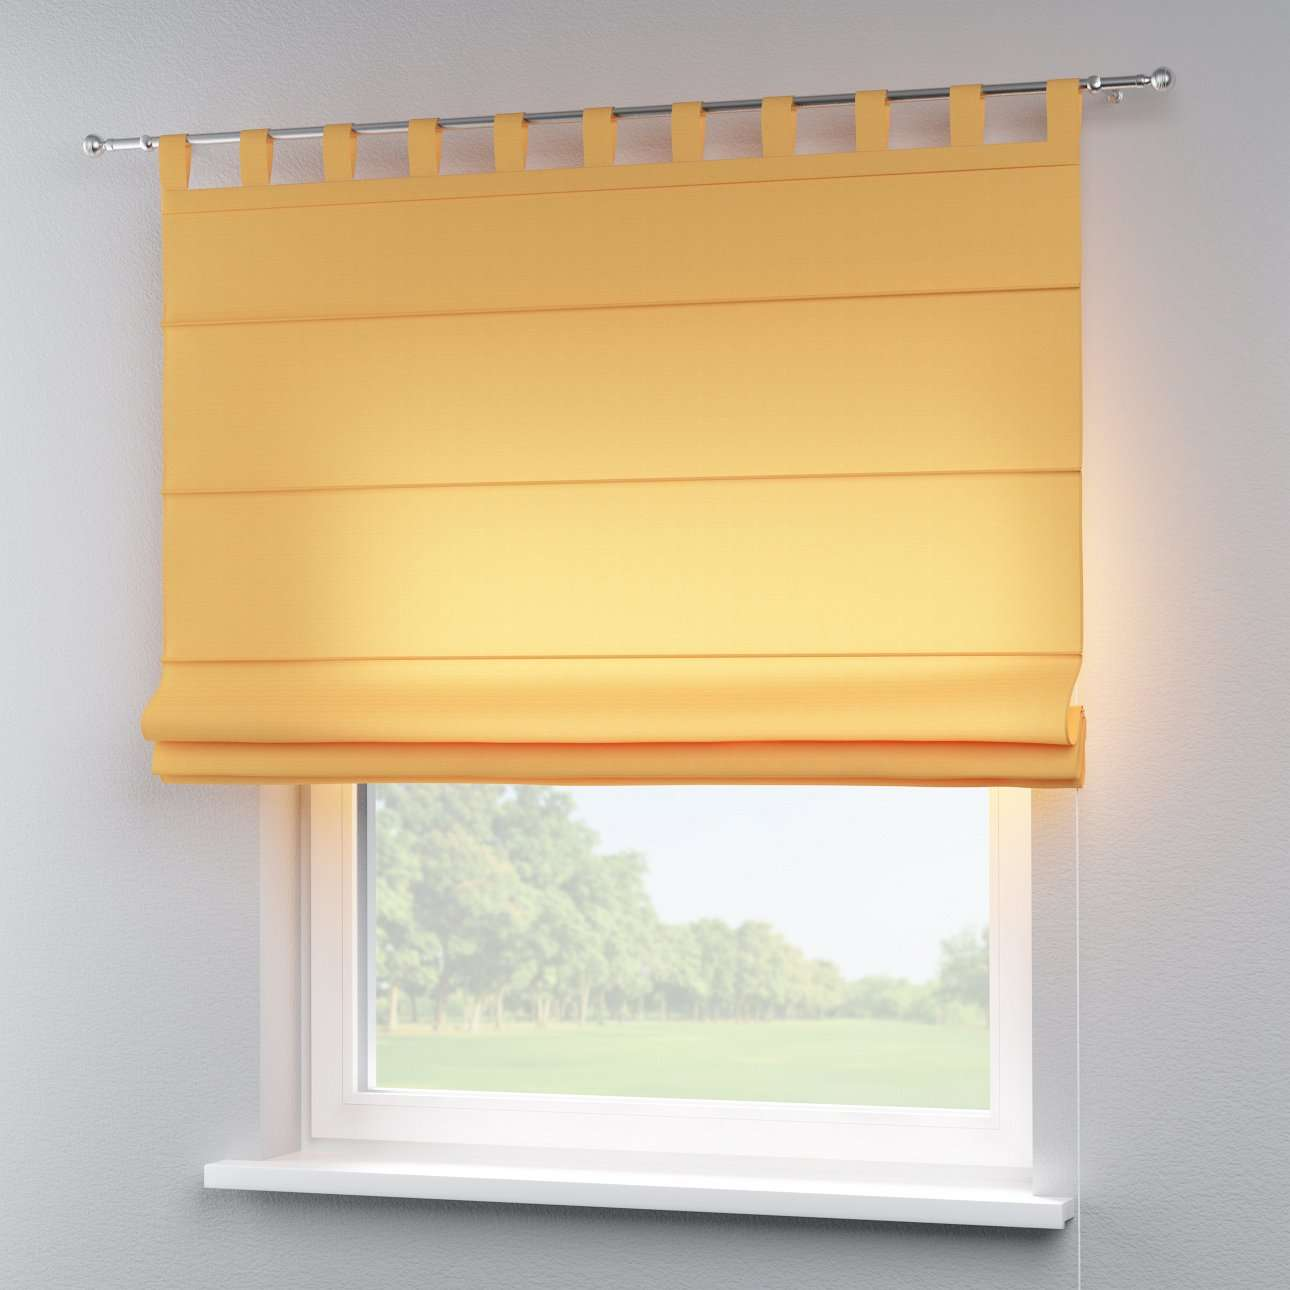 Verona tab top roman blind 80 x 170 cm (31.5 x 67 inch) in collection Jupiter, fabric: 127-46